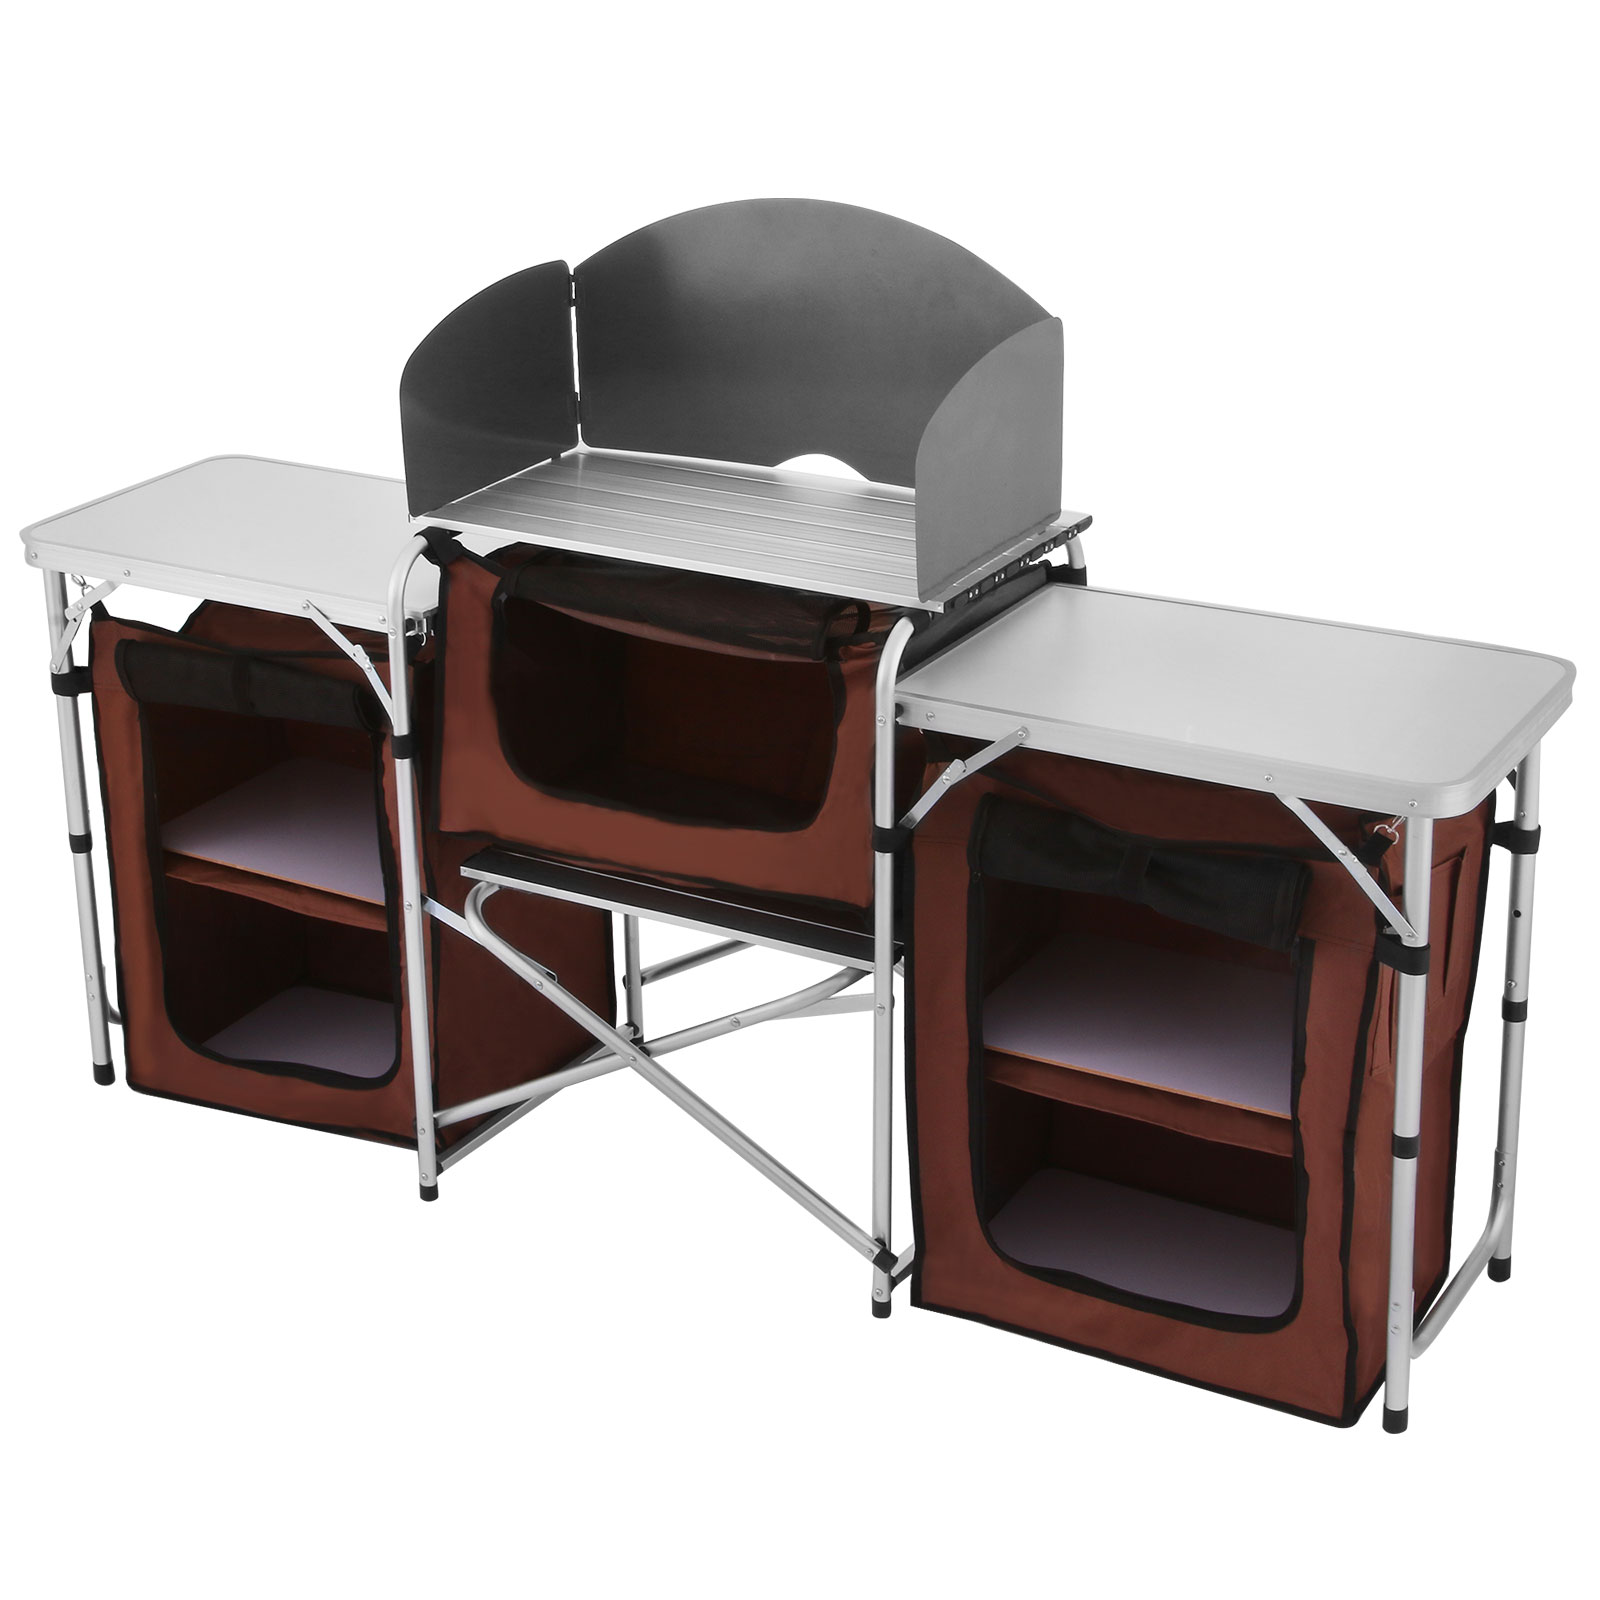 Cabinet Camping Kitchen Portable Picnic Table Cooking Food